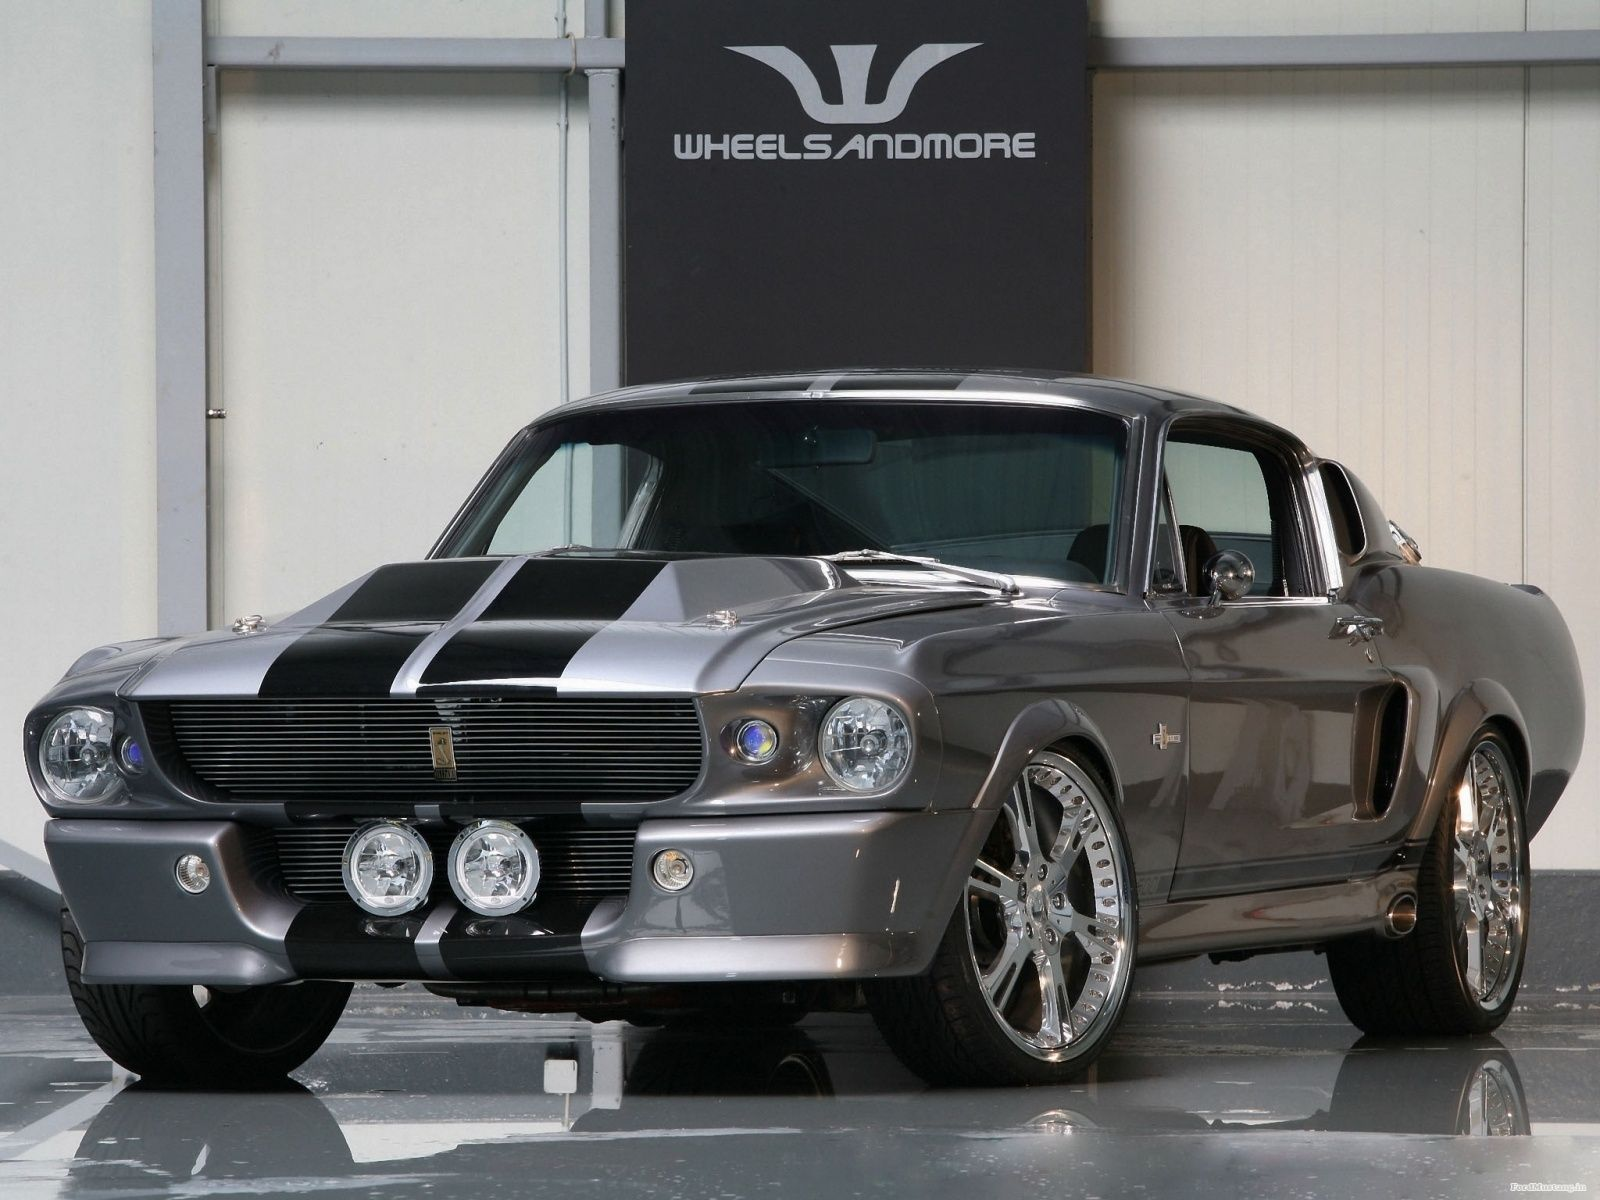 1968 Ford Mustang Shelby Gt500 Eleanor Ford Mustang Shelby Gt500 Ford Mustang Shelby Shelby Gt